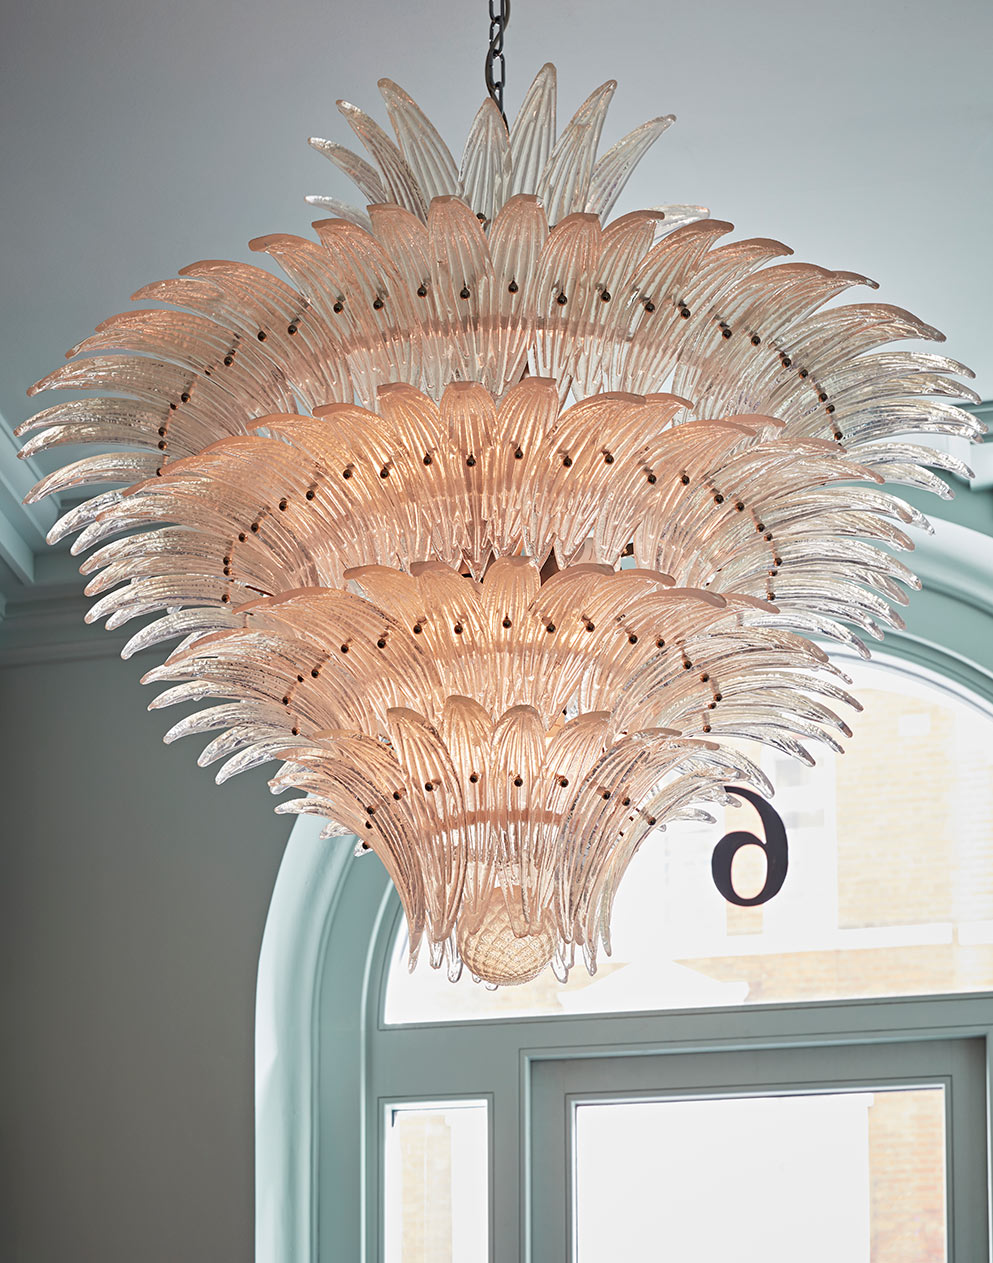 Really Useful Group London HQ beautiful glass chandelier